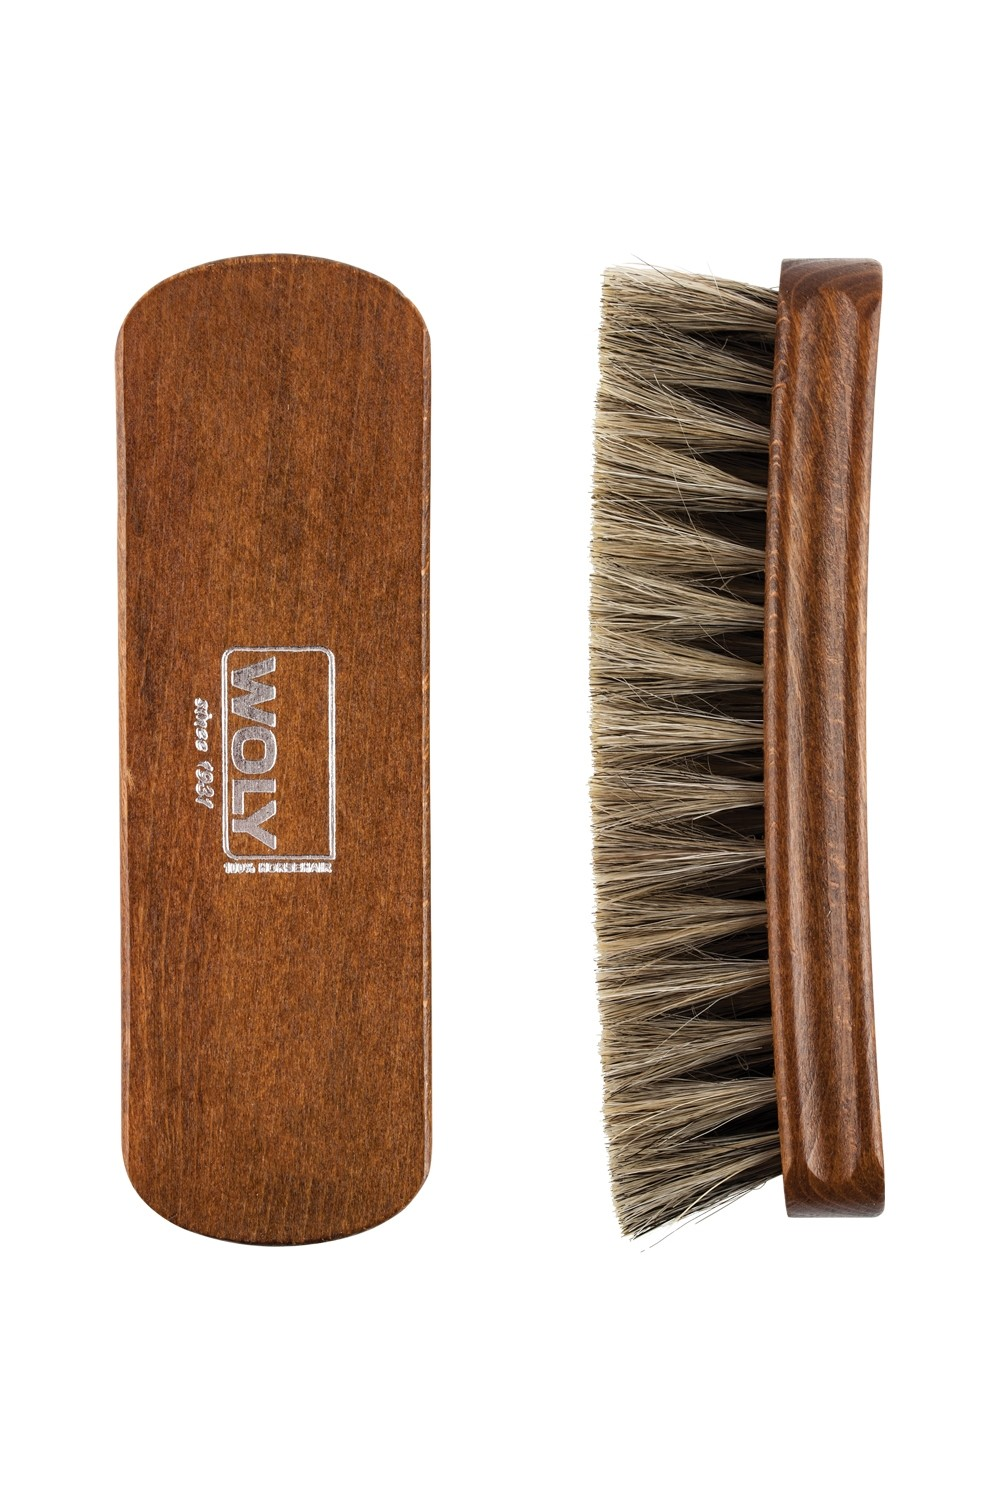 Woly Polish Brush 18 cm